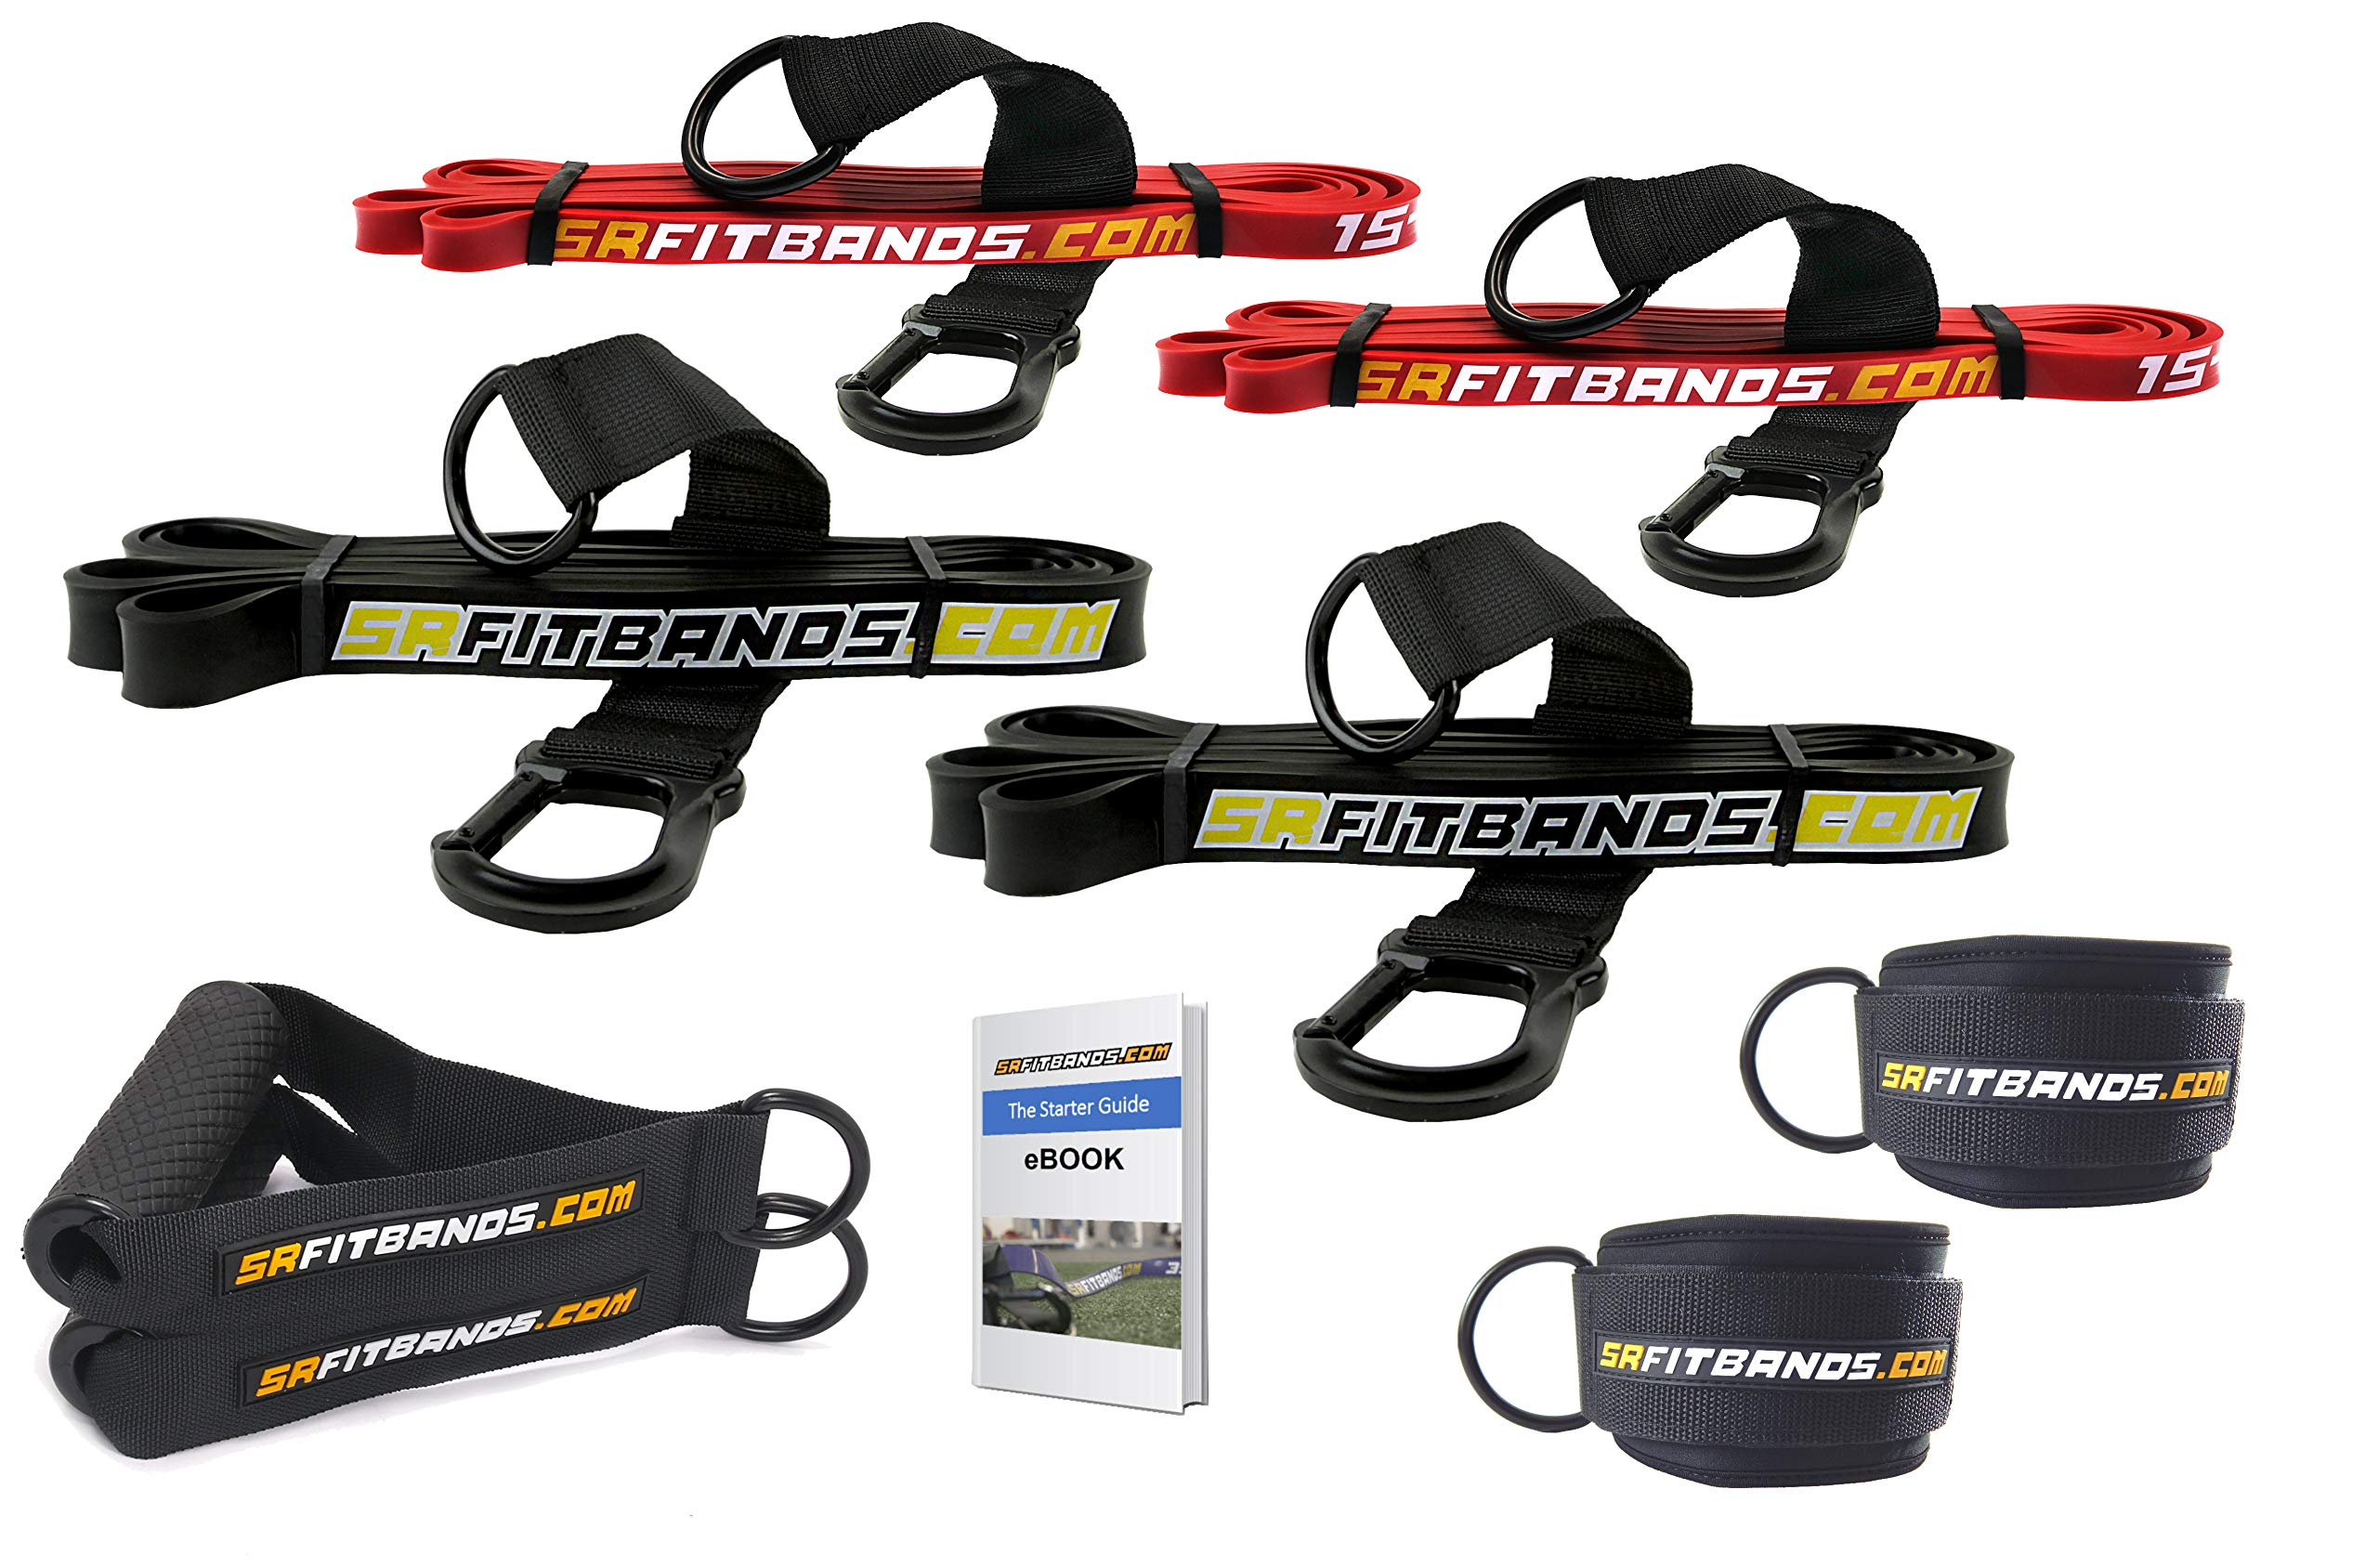 Resistance Band Starter Kit   with 4 SR Fit Resistance Bands, 2 Ankle Cuffs and 2 Handles   The Athlete Resistance Band Kit for Teams, Bodybuilding, Powerlifting, Crossfit, Home Gyms, and Home Workout